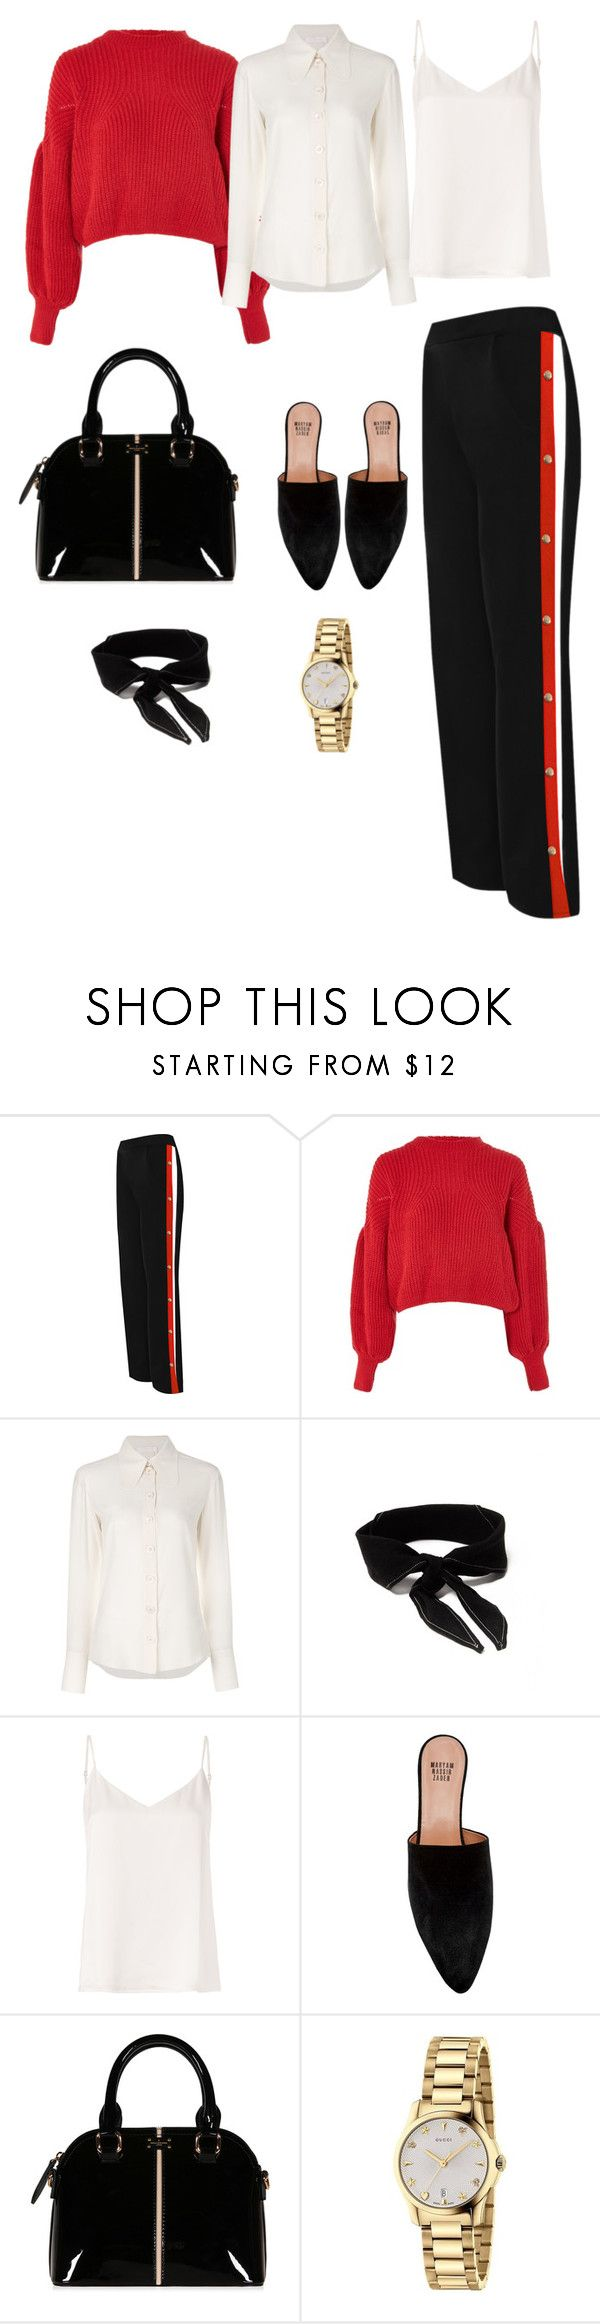 """layering"" by natyapshopper on Polyvore featuring moda, WearAll, Nobody's Child, Chloé, L'Agence, Maryam Nassir Zadeh y Gucci"